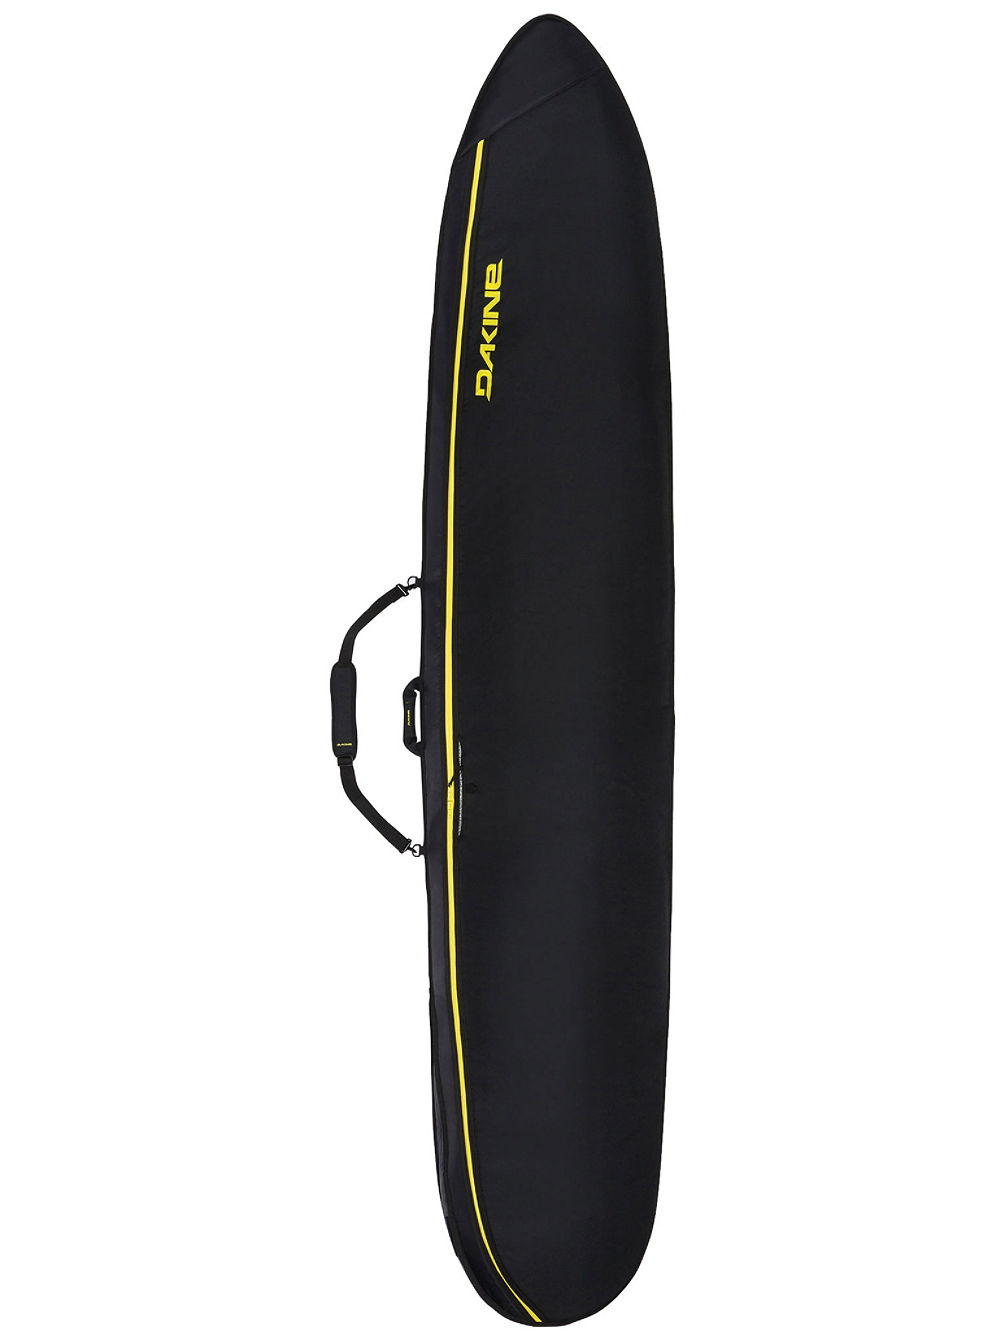 11.0 Recon Peahi Boardbag